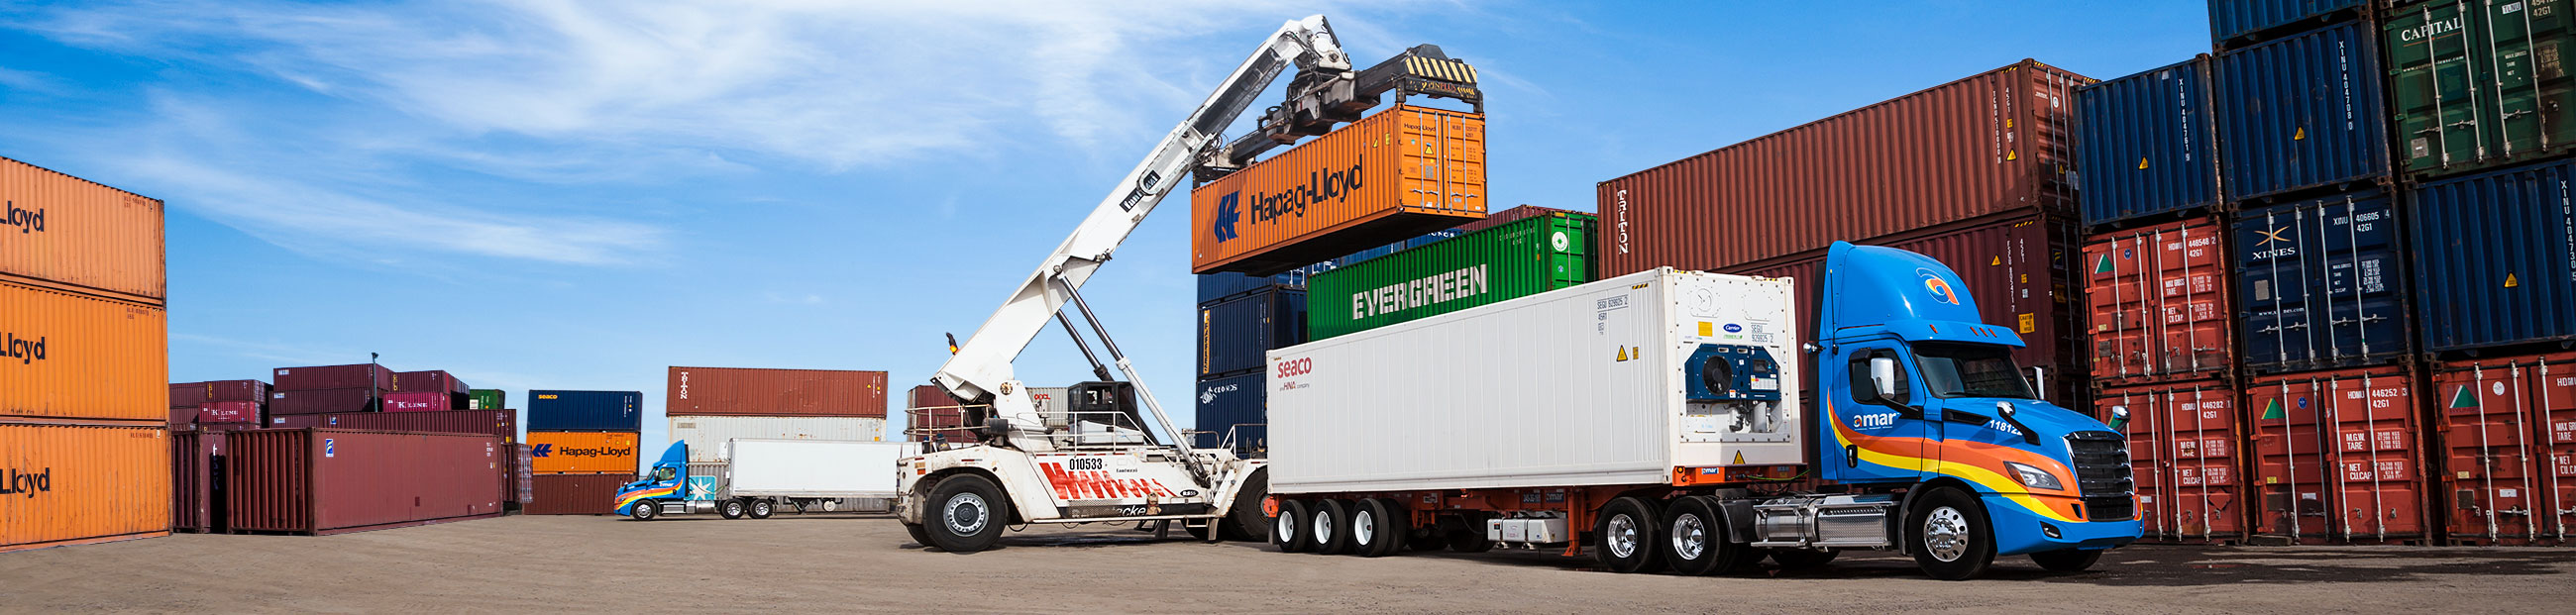 Trucking, intermodal and container storage